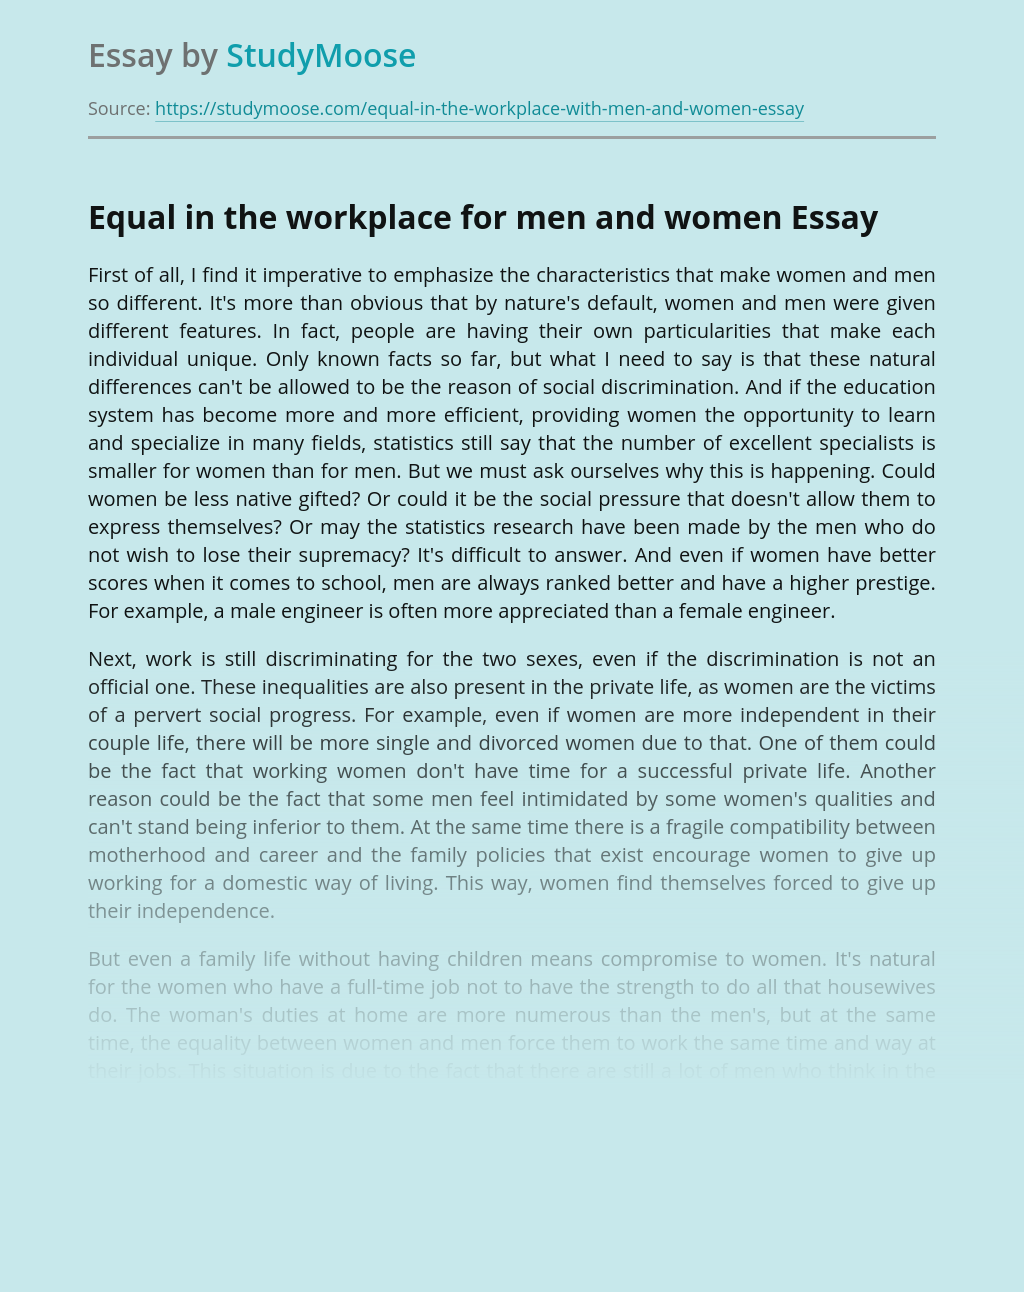 Equal in the workplace for men and women